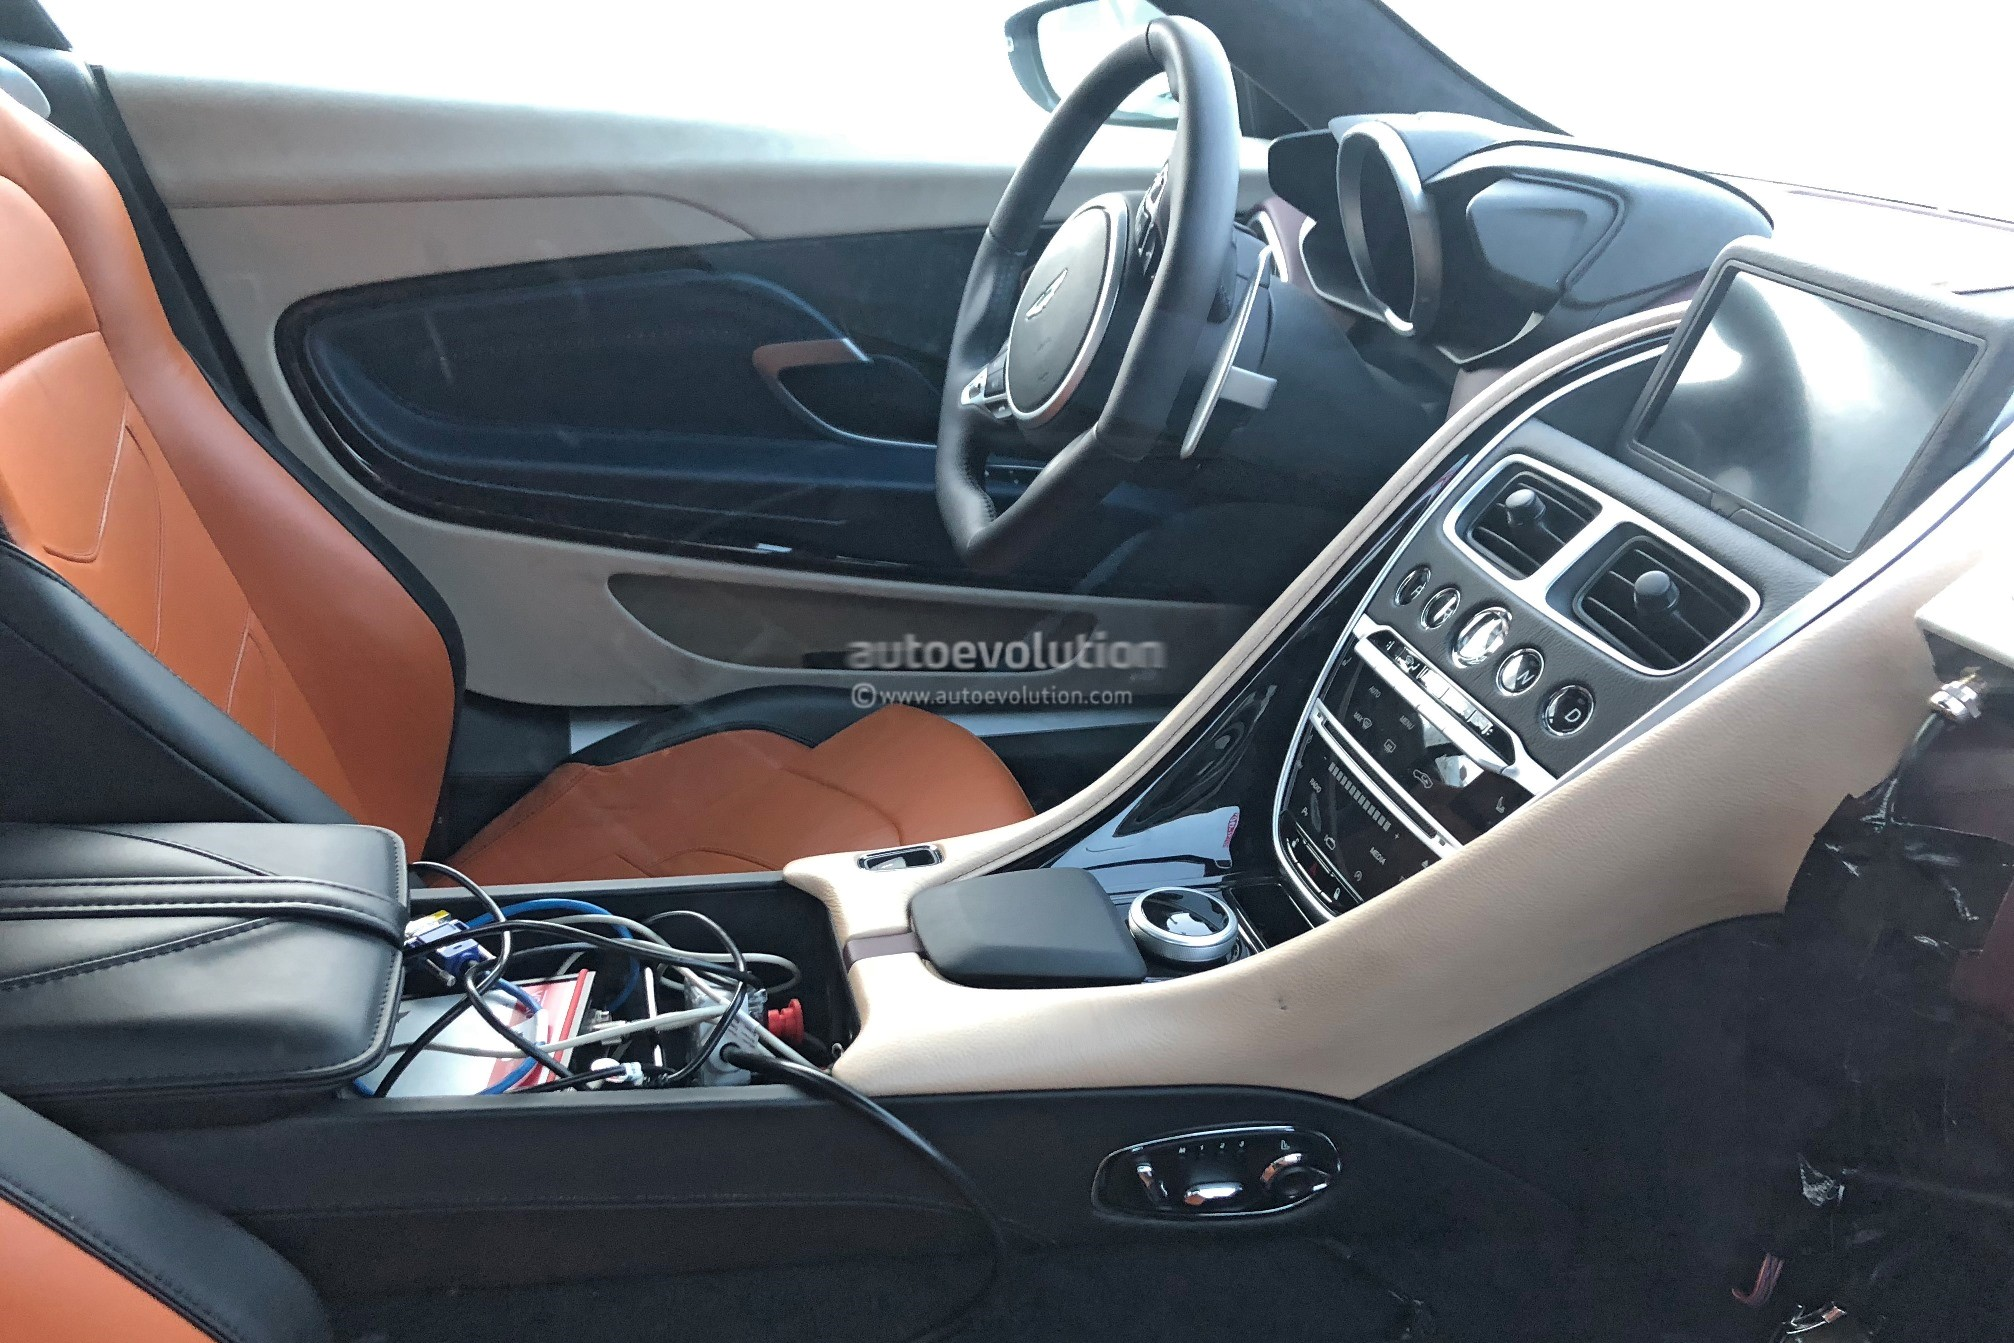 Aston Martin Vantage 2019 >> Spyshots: 2019 Aston Martin DBS Superleggera Shows Different Interior - autoevolution